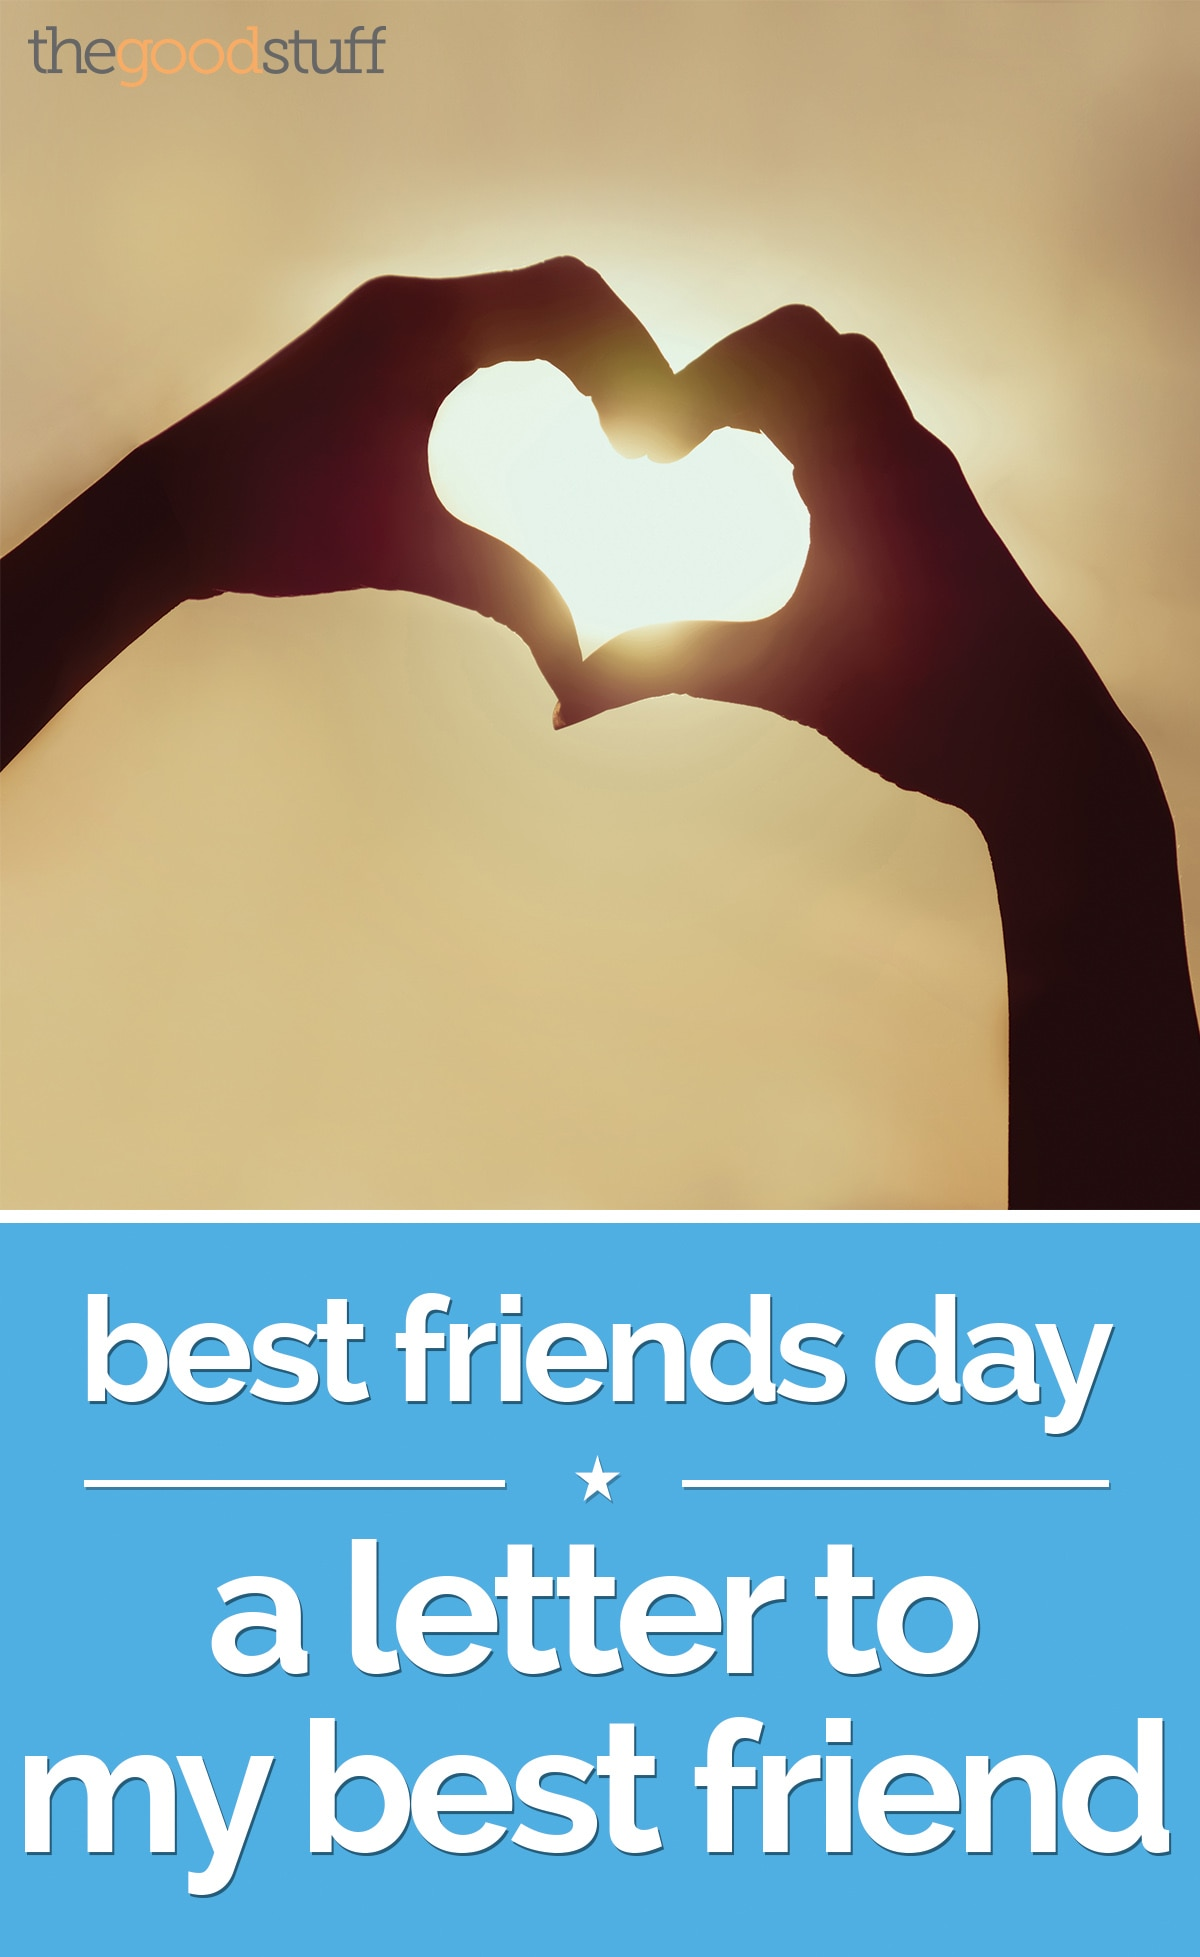 Best Friends Day A Letter to My Best Friend thegoodstuff